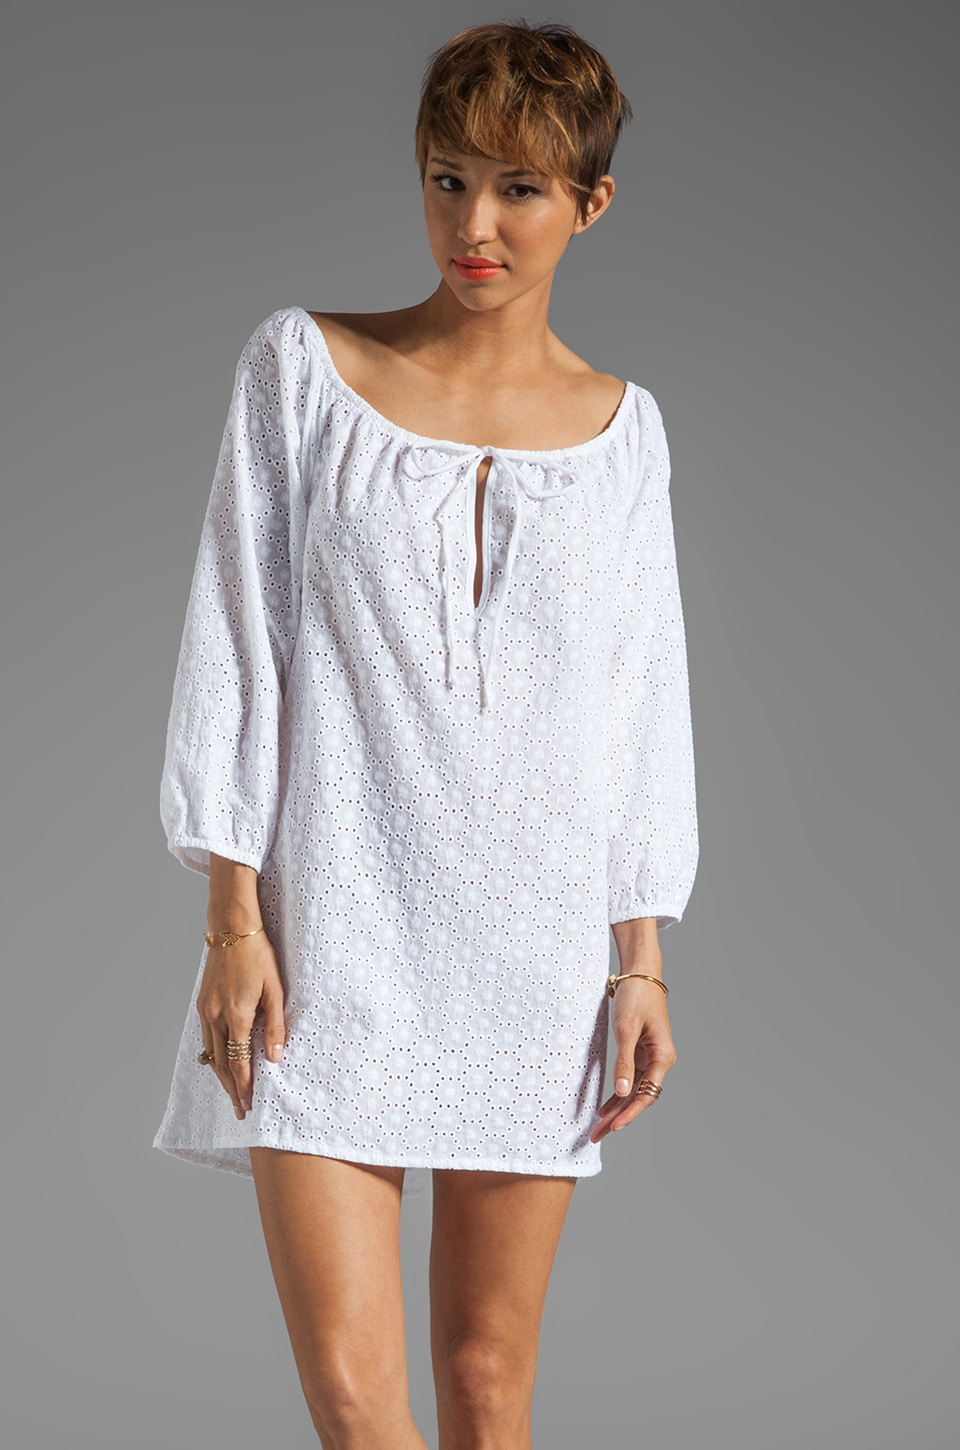 Ella Moss Trellis Cover Up in White